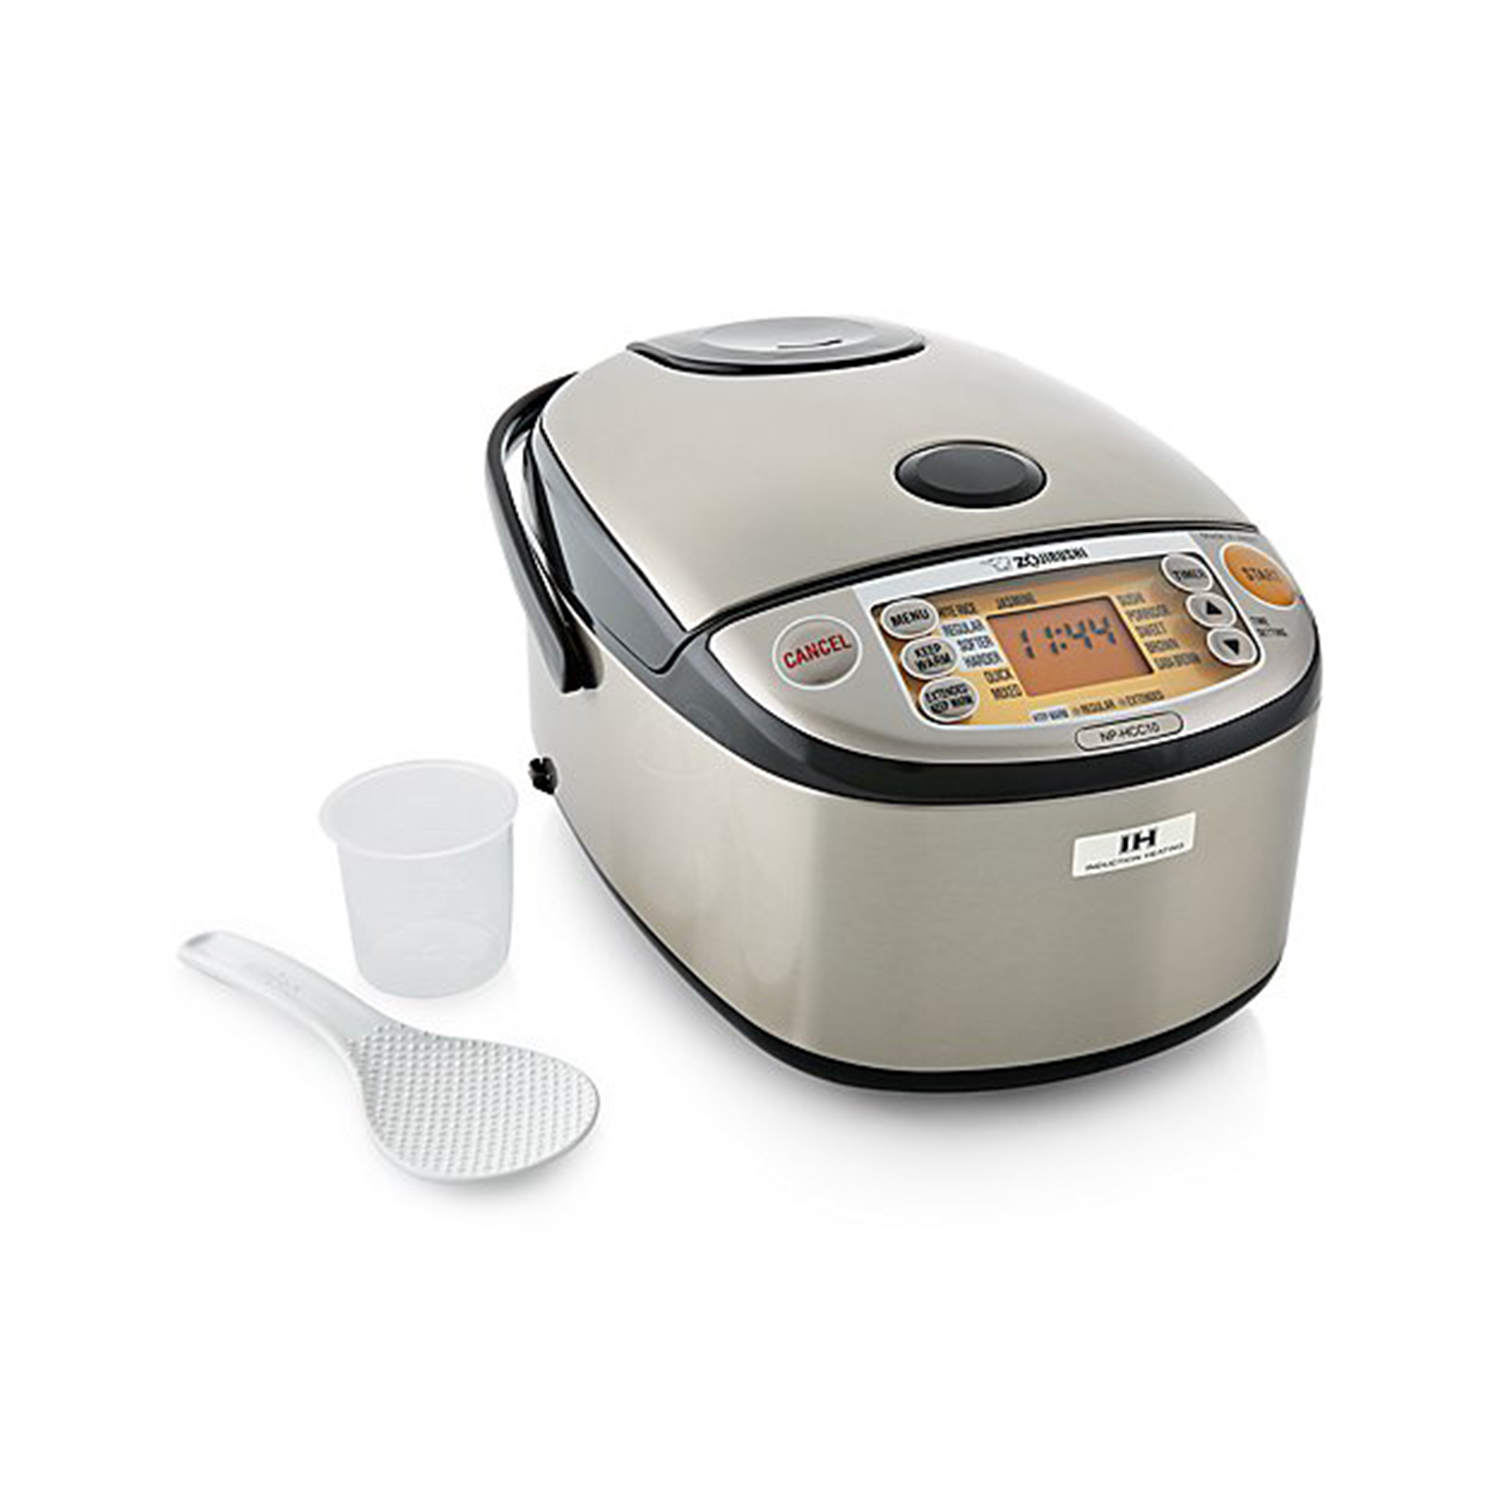 Zojirushi Induction Heating 5.5-Cup Rice Cooker